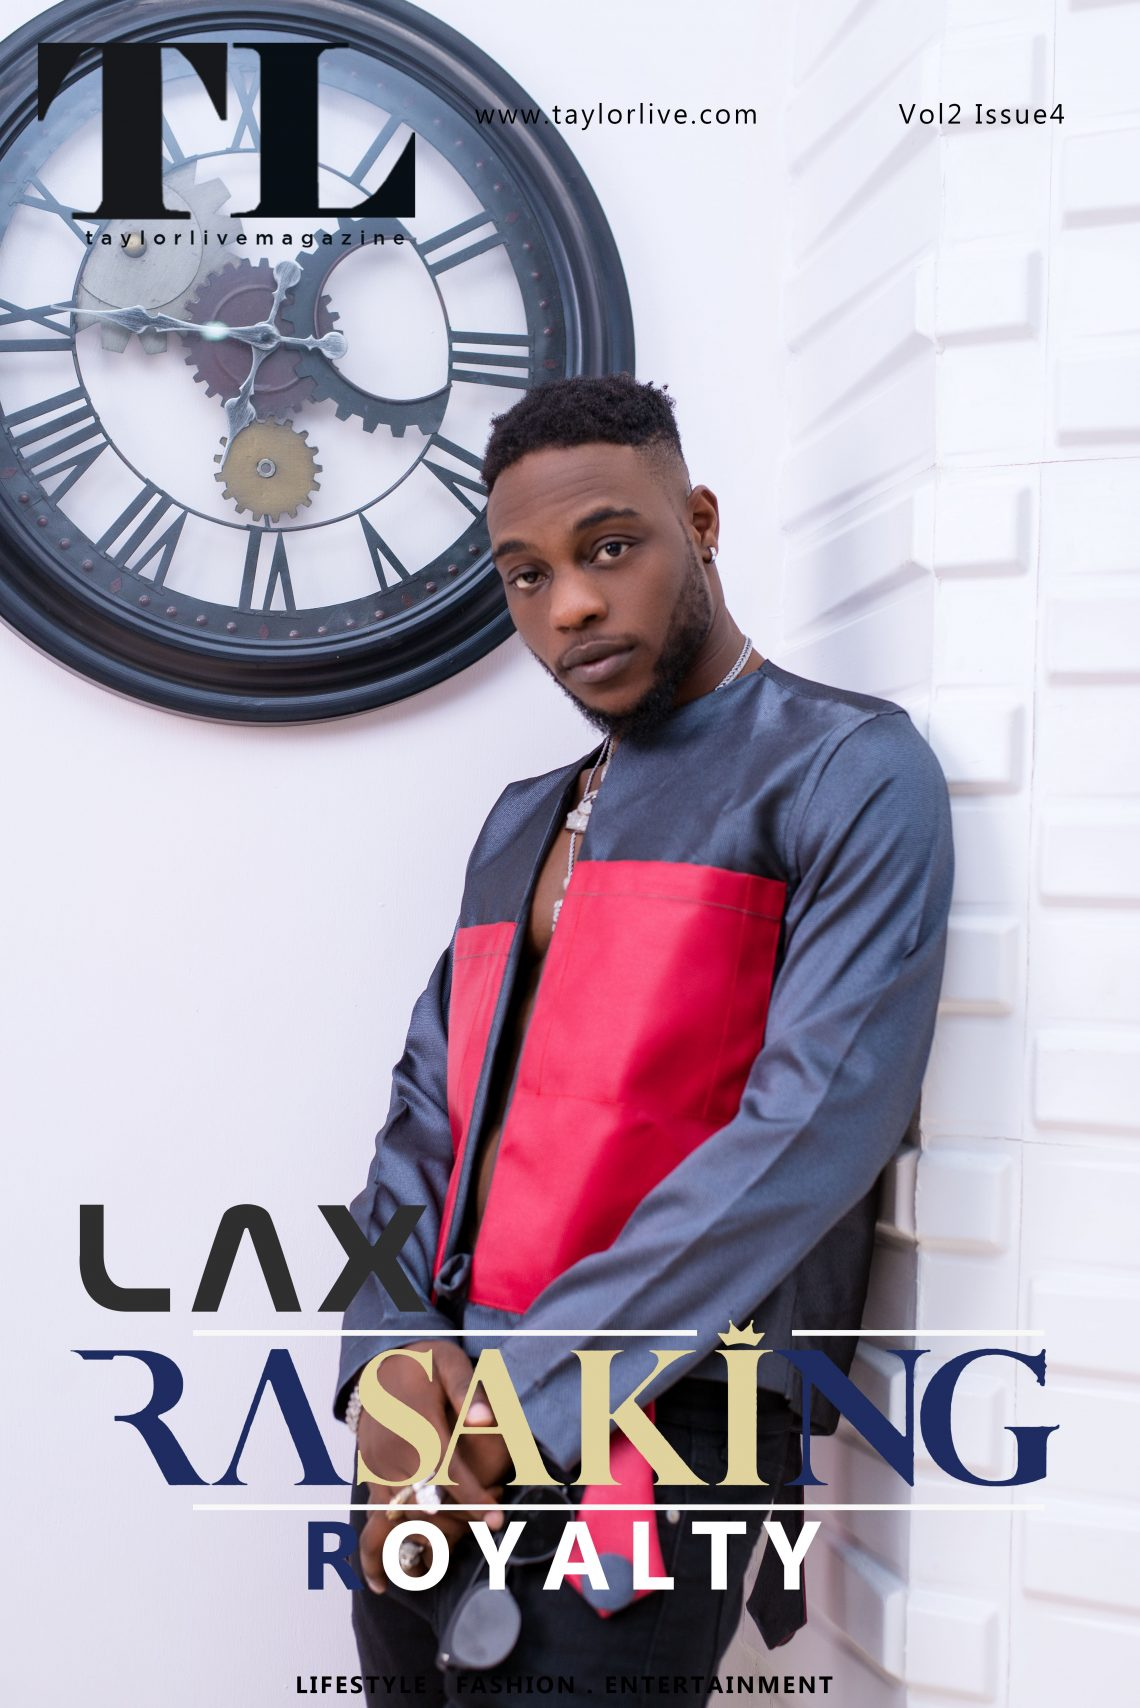 """RAZAKING = ROYALTY"" Damilola Afolabi popularly known as L.A.X Covers Taylor Live Magazine's  Latest Issue ( TL Magazine)."